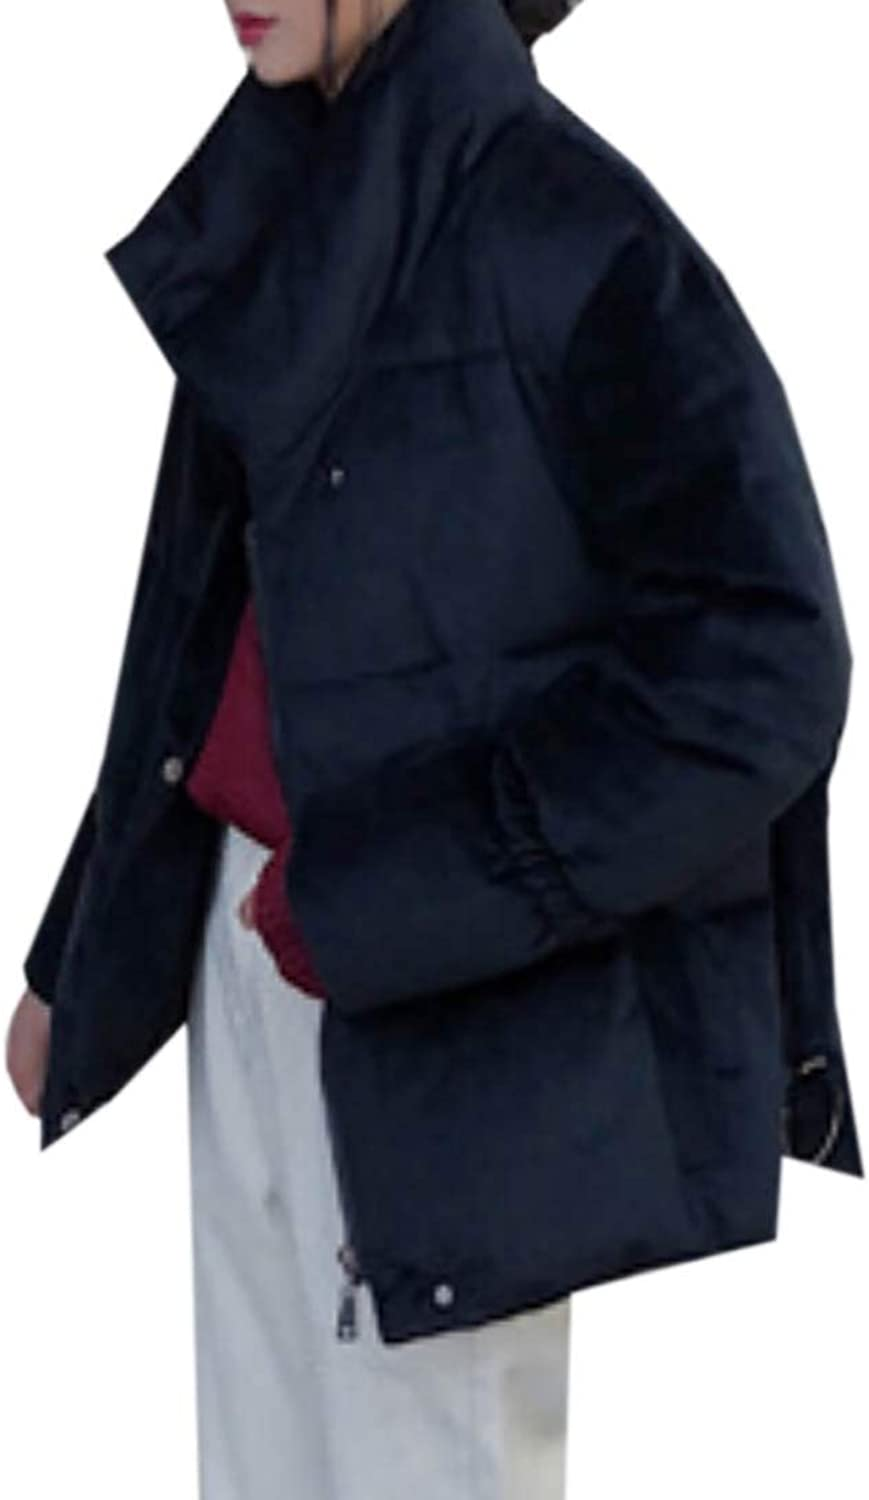 Maweisong Women's Thick Down Jacket Packable Down Coat Stand Collar Overcoat Jacket